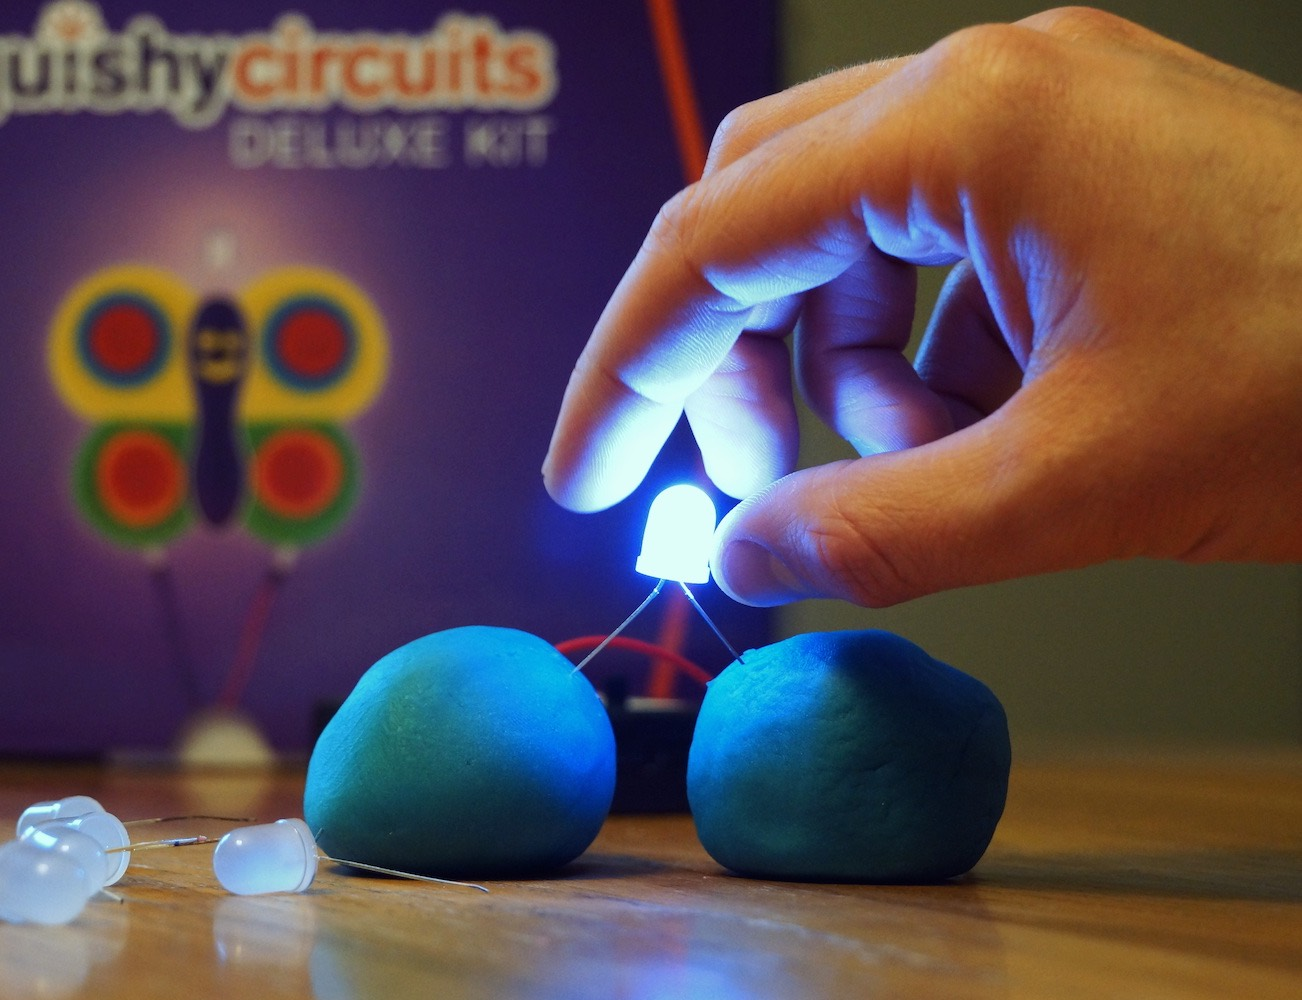 Squishy Circuits Kits   Gadget Flow